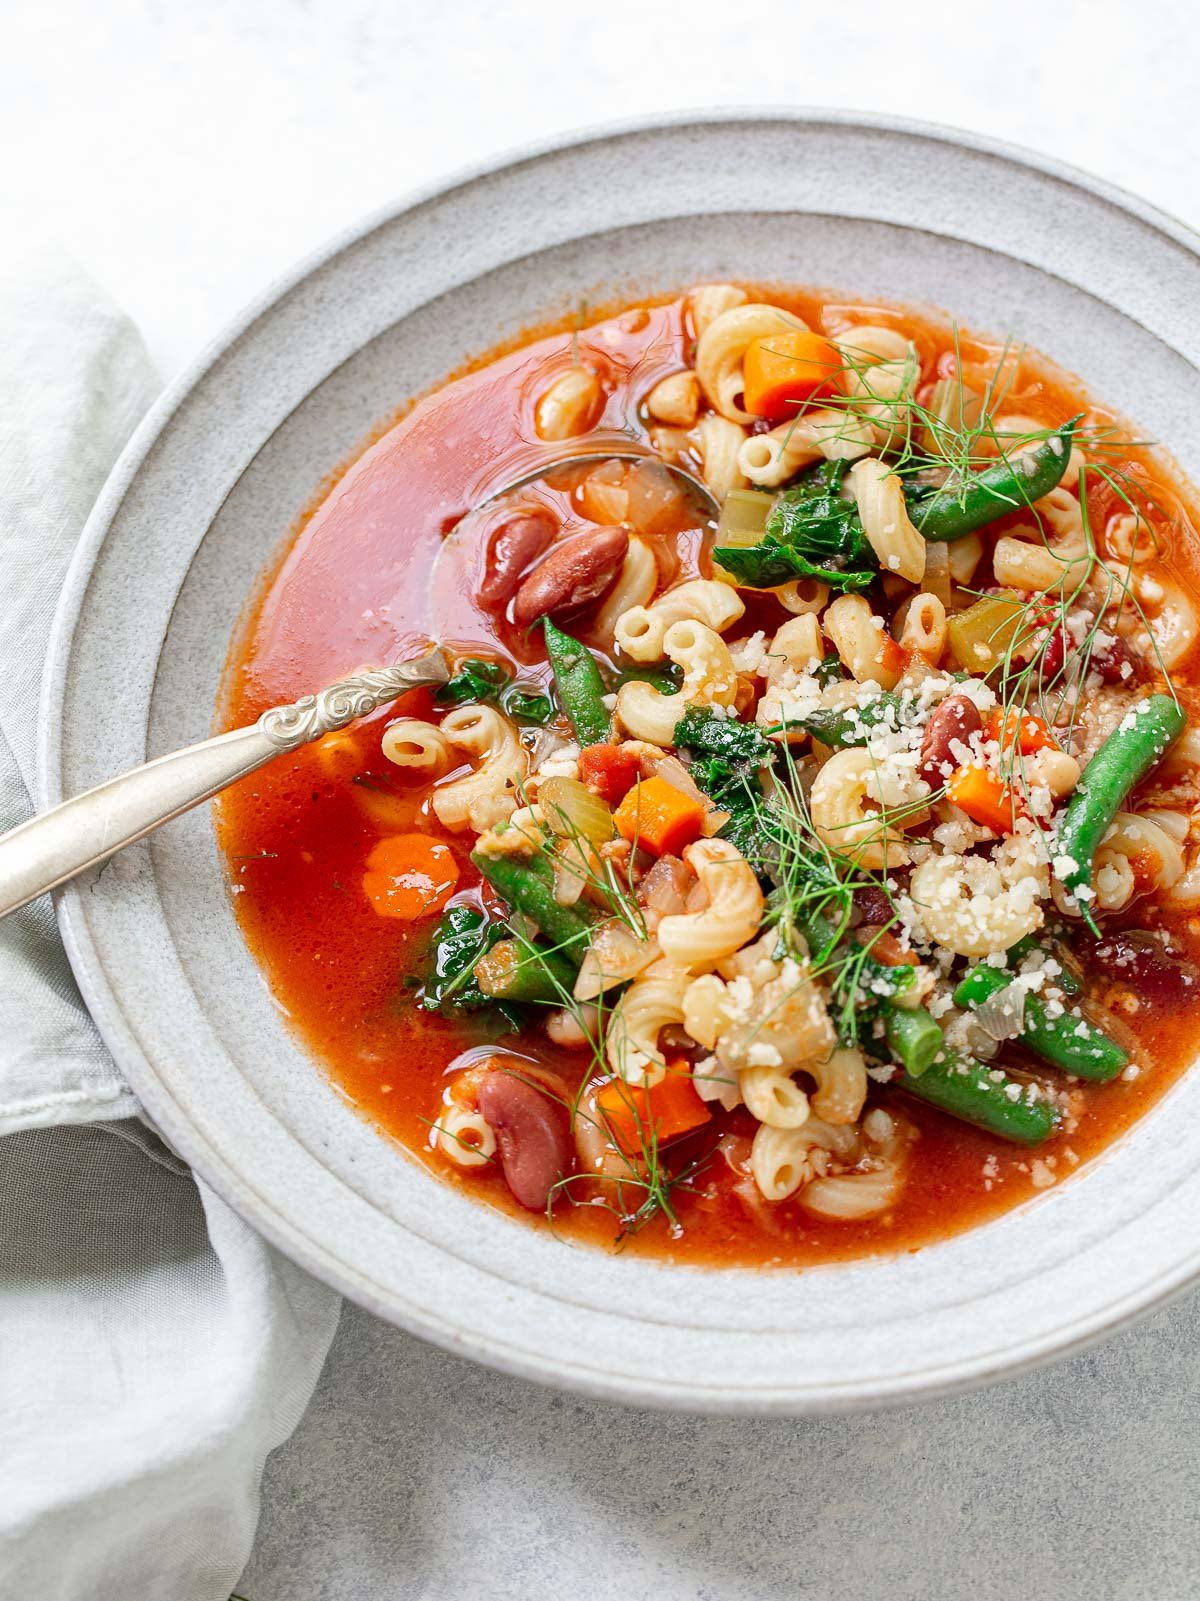 A soup bowl and spoon, with tomato-based vegetable minestrone soup with green beans, elbow macaroni, beans, carrots and grated parmesan cheese.